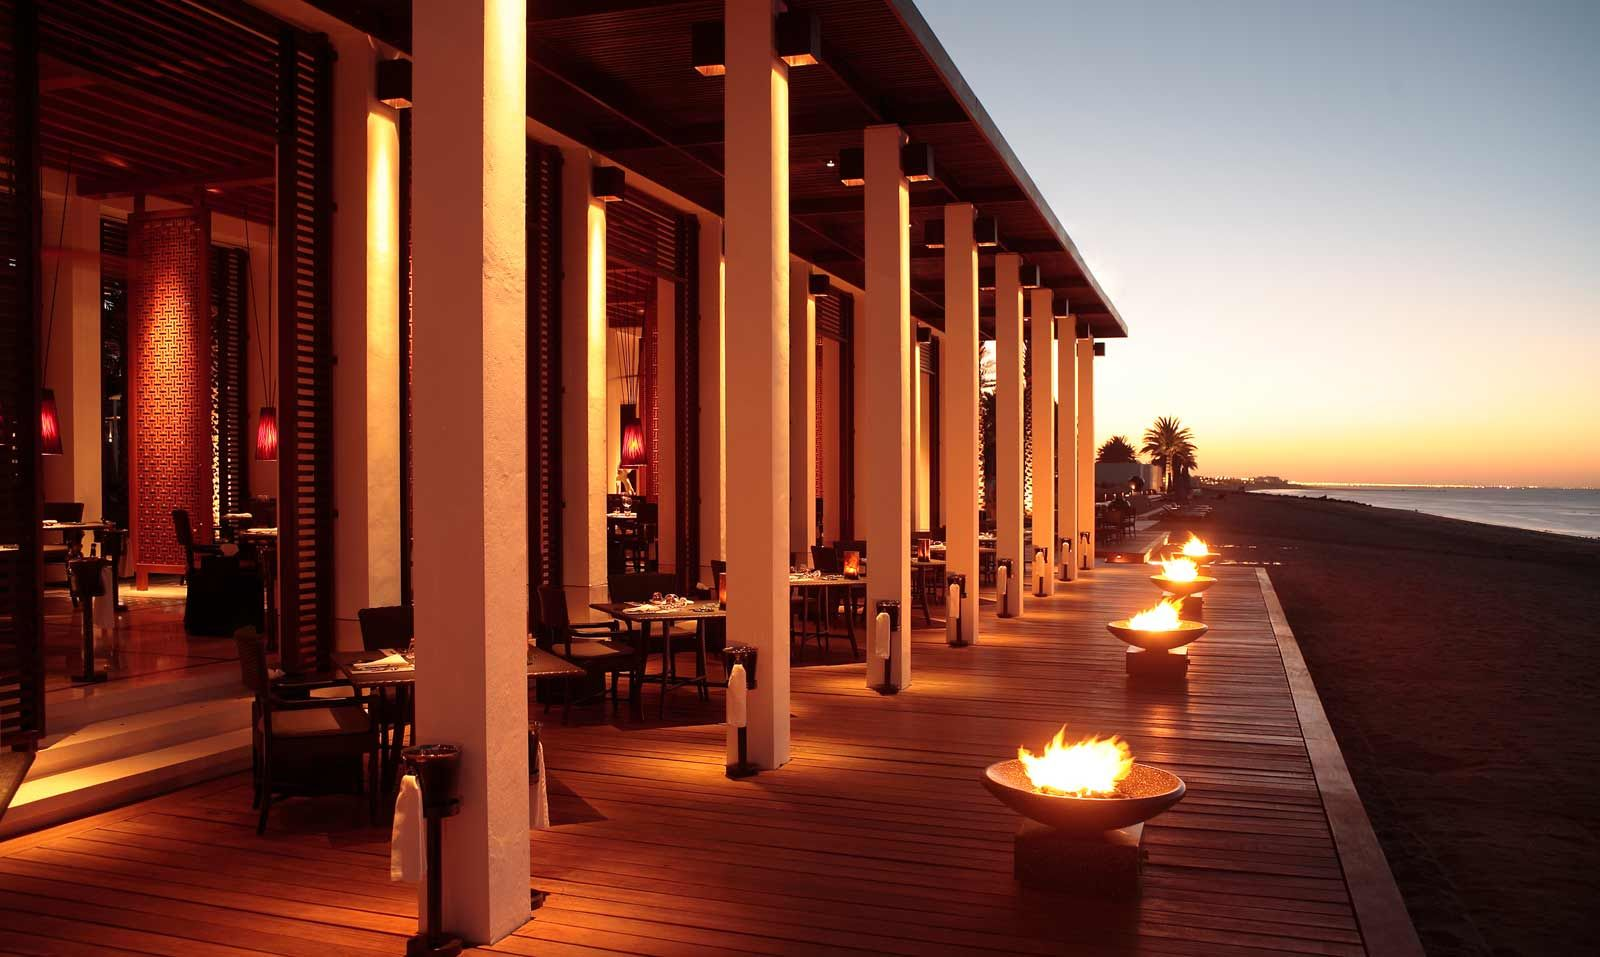 Romance in style at the chedi muscat luxury hotel oman for Hotel luxury oman